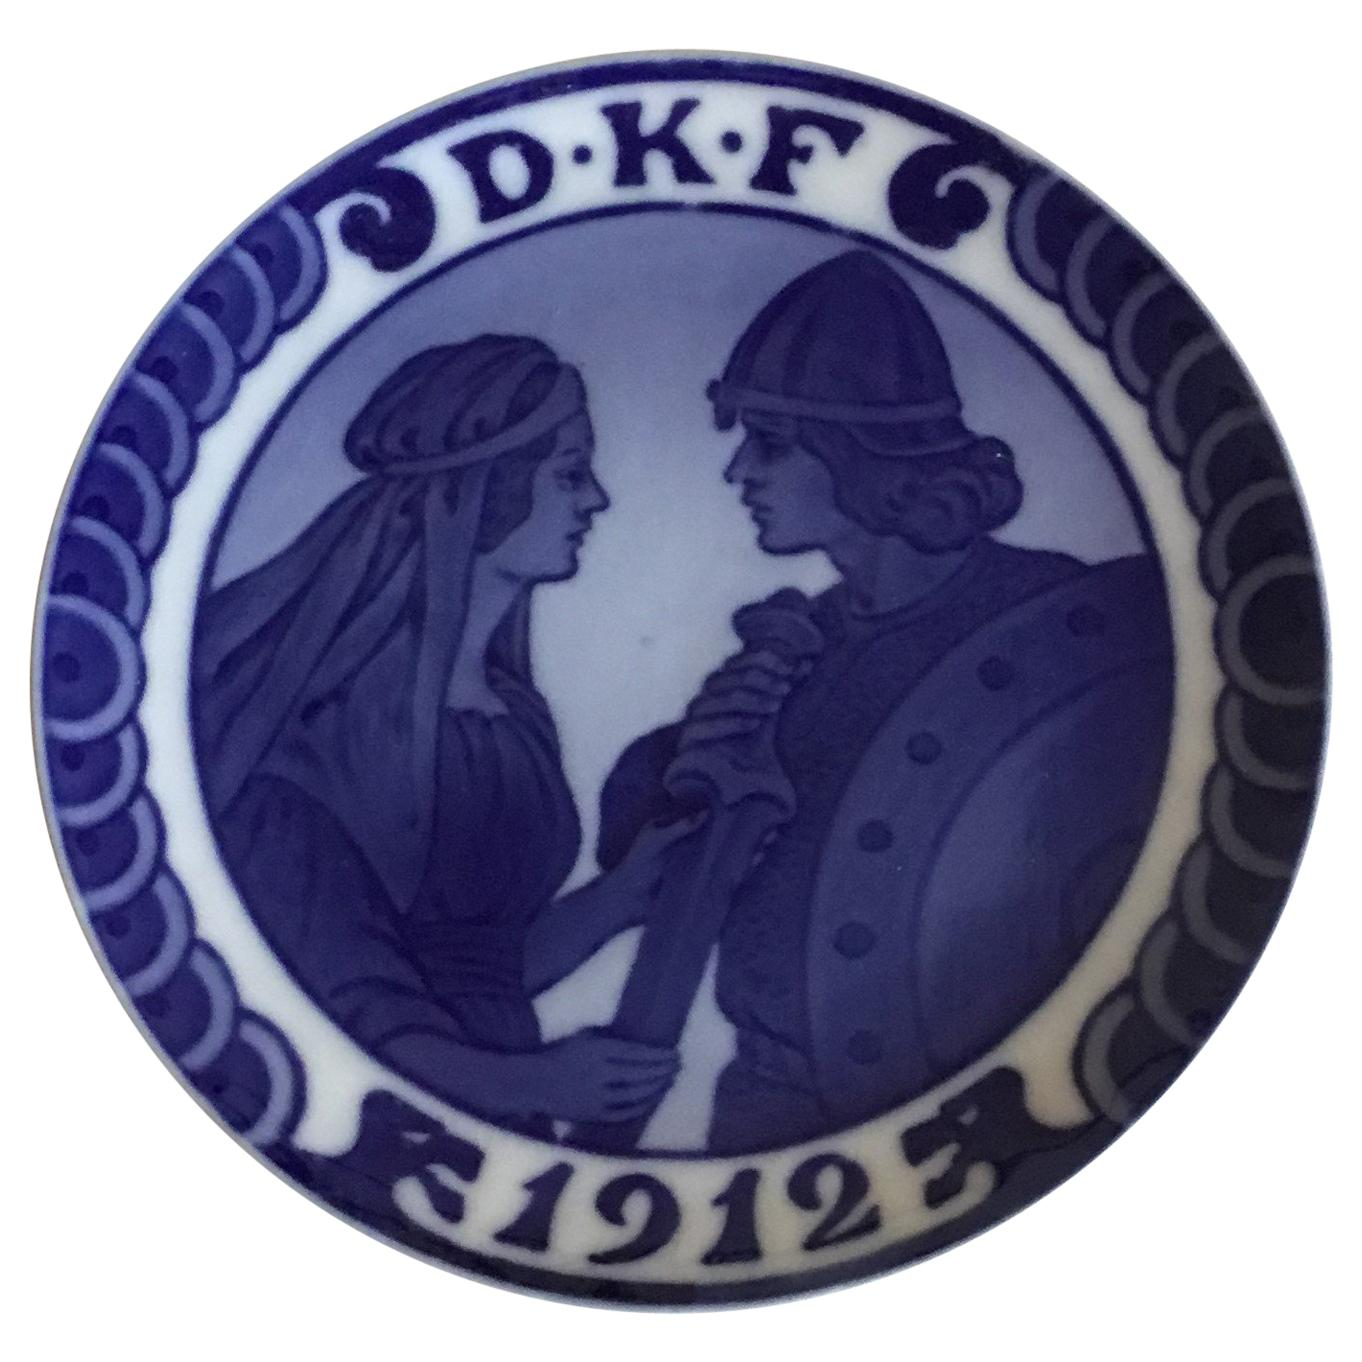 Royal Copenhagen Commemorative Plate from 1912 RC-CM136